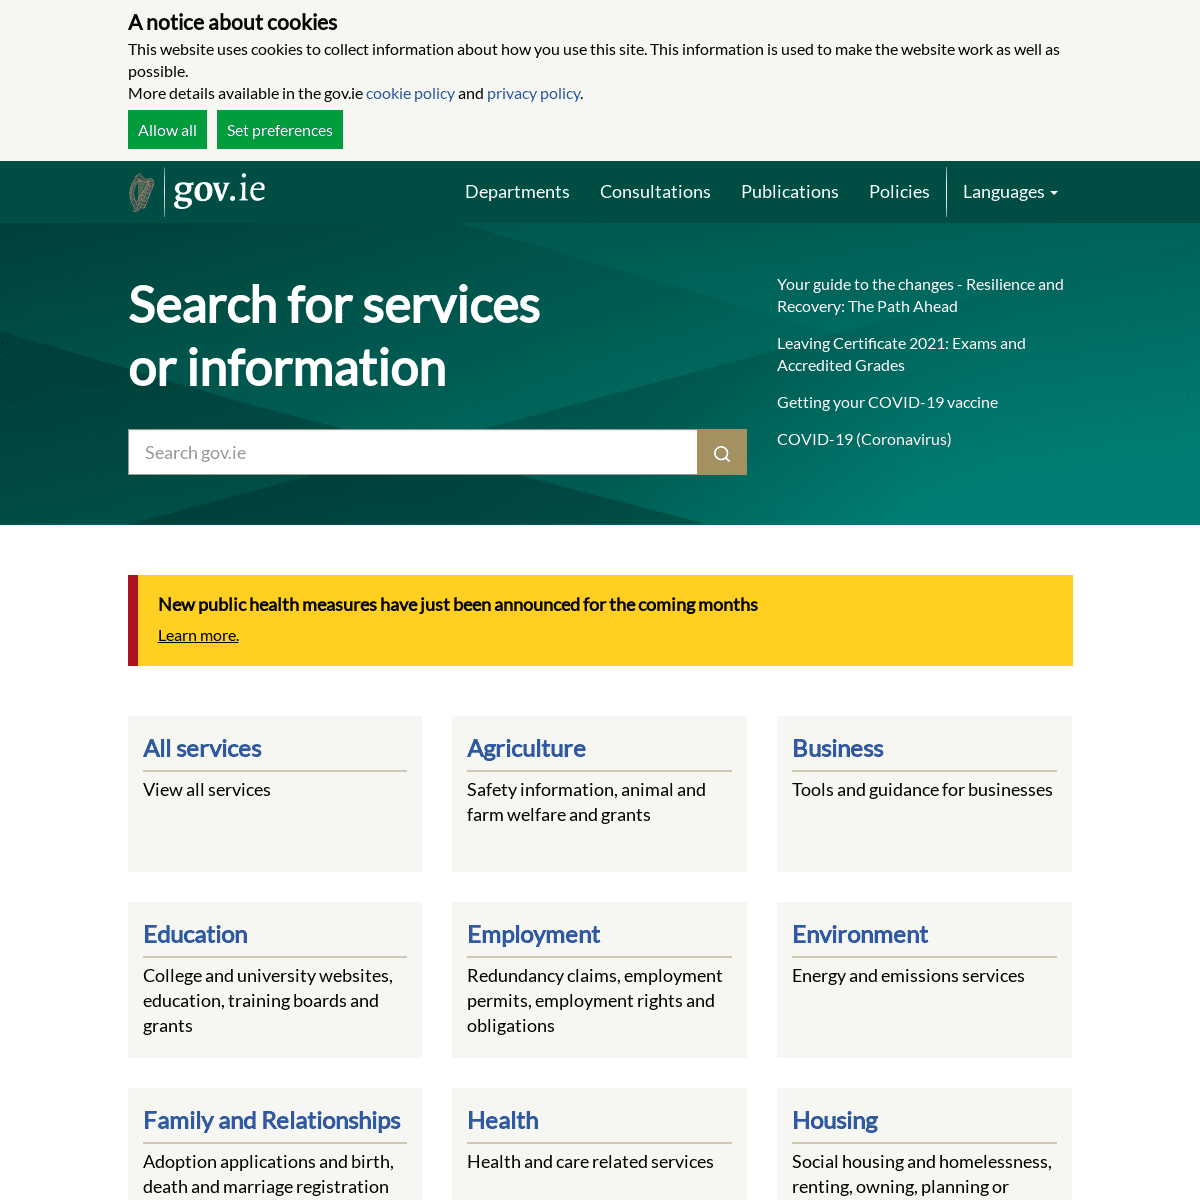 gov.ie - Search for services or information